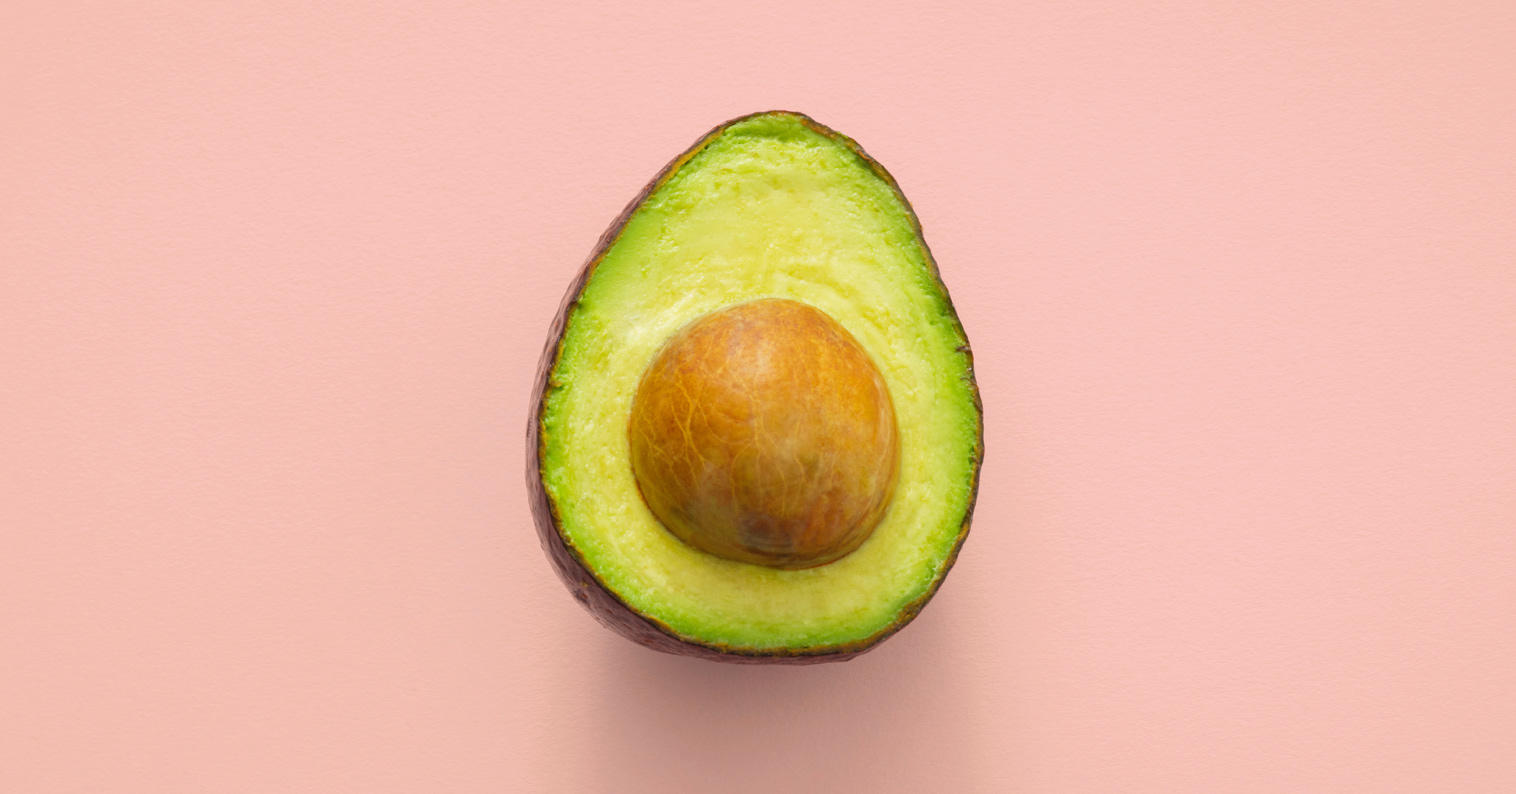 This is a supplementary avocado